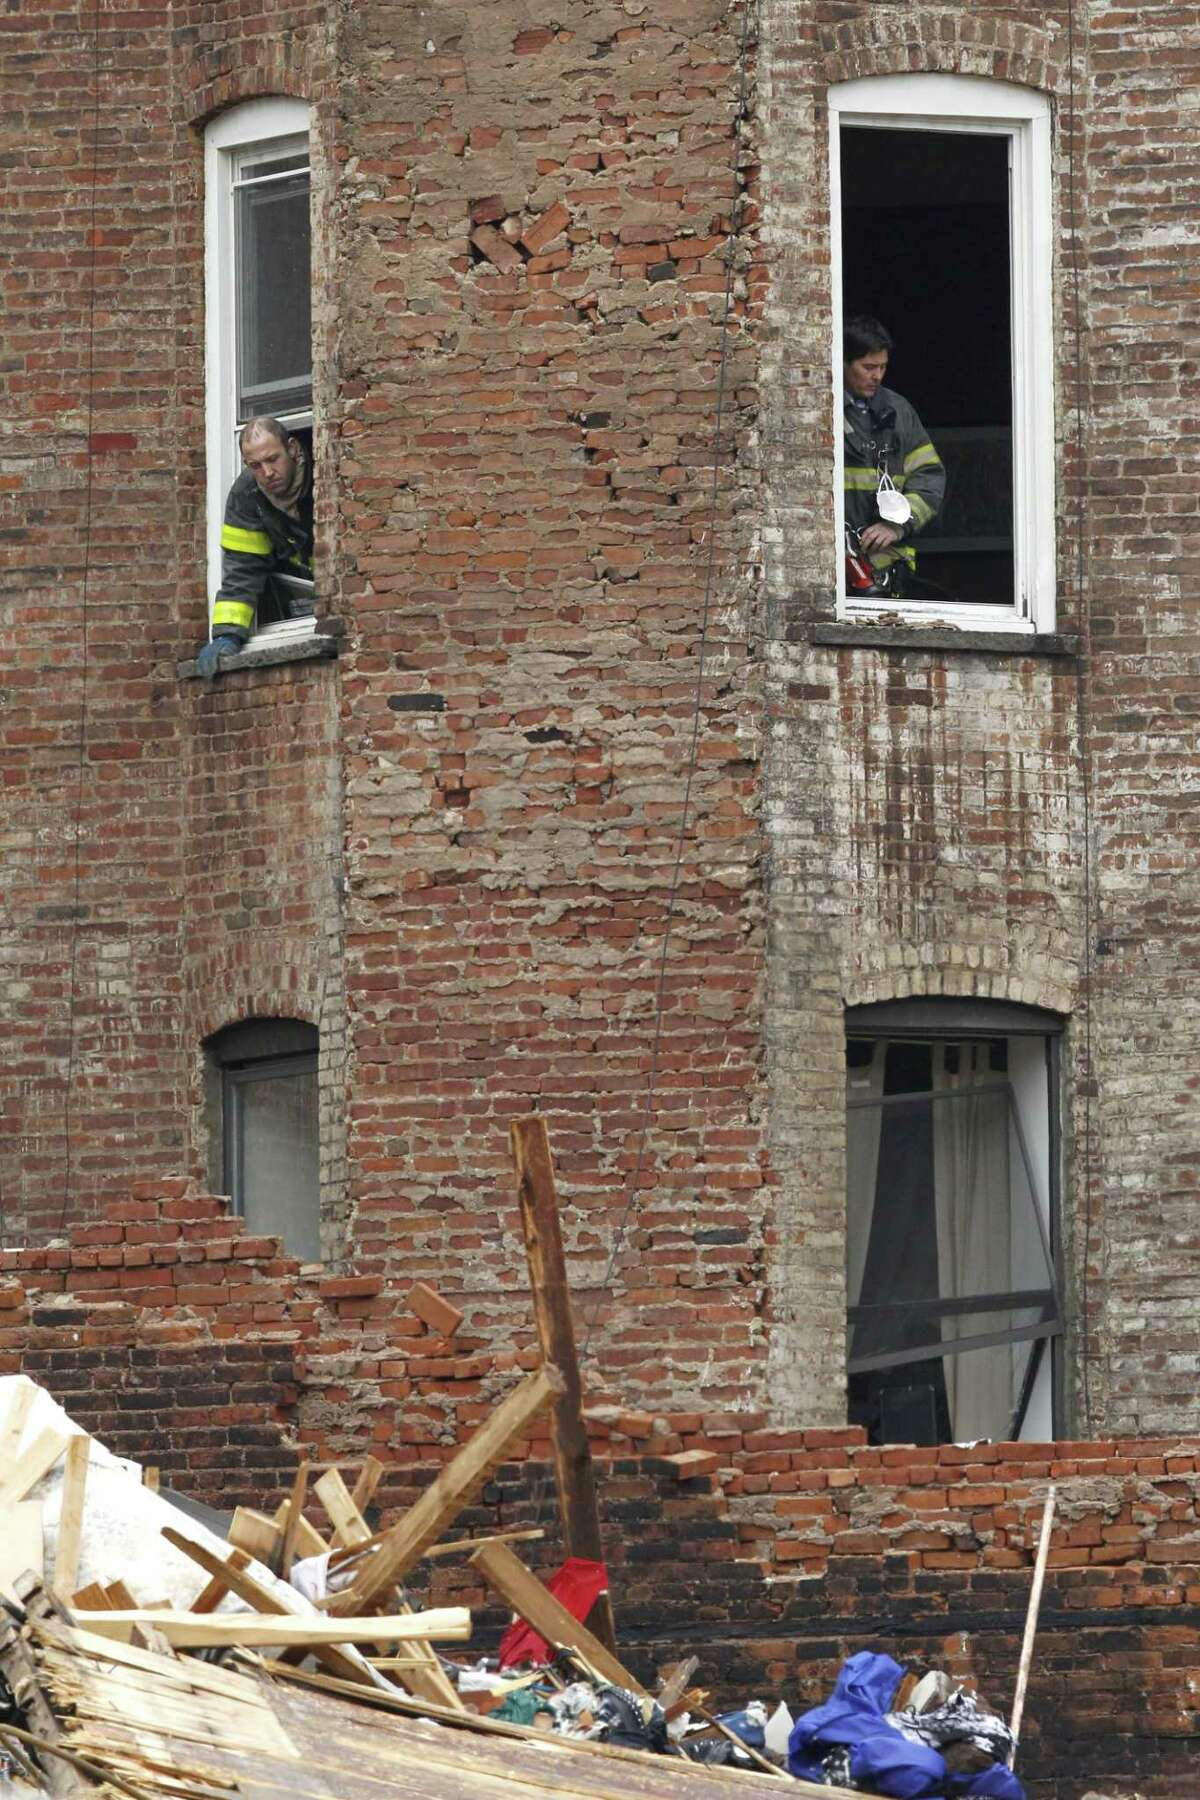 Fire officials stand at the windows of a building adjacent to the site of a building collapse in the East Village neighborhood of New York, Friday, March 27, 2015. Nineteen people were injured, four critically, after the powerful blast and fire sent flames soaring and debris flying Thursday afternoon. Preliminary evidence suggested that a gas explosion amid plumbing and gas work inside the building was to blame. (AP Photo/Julio Cortez)